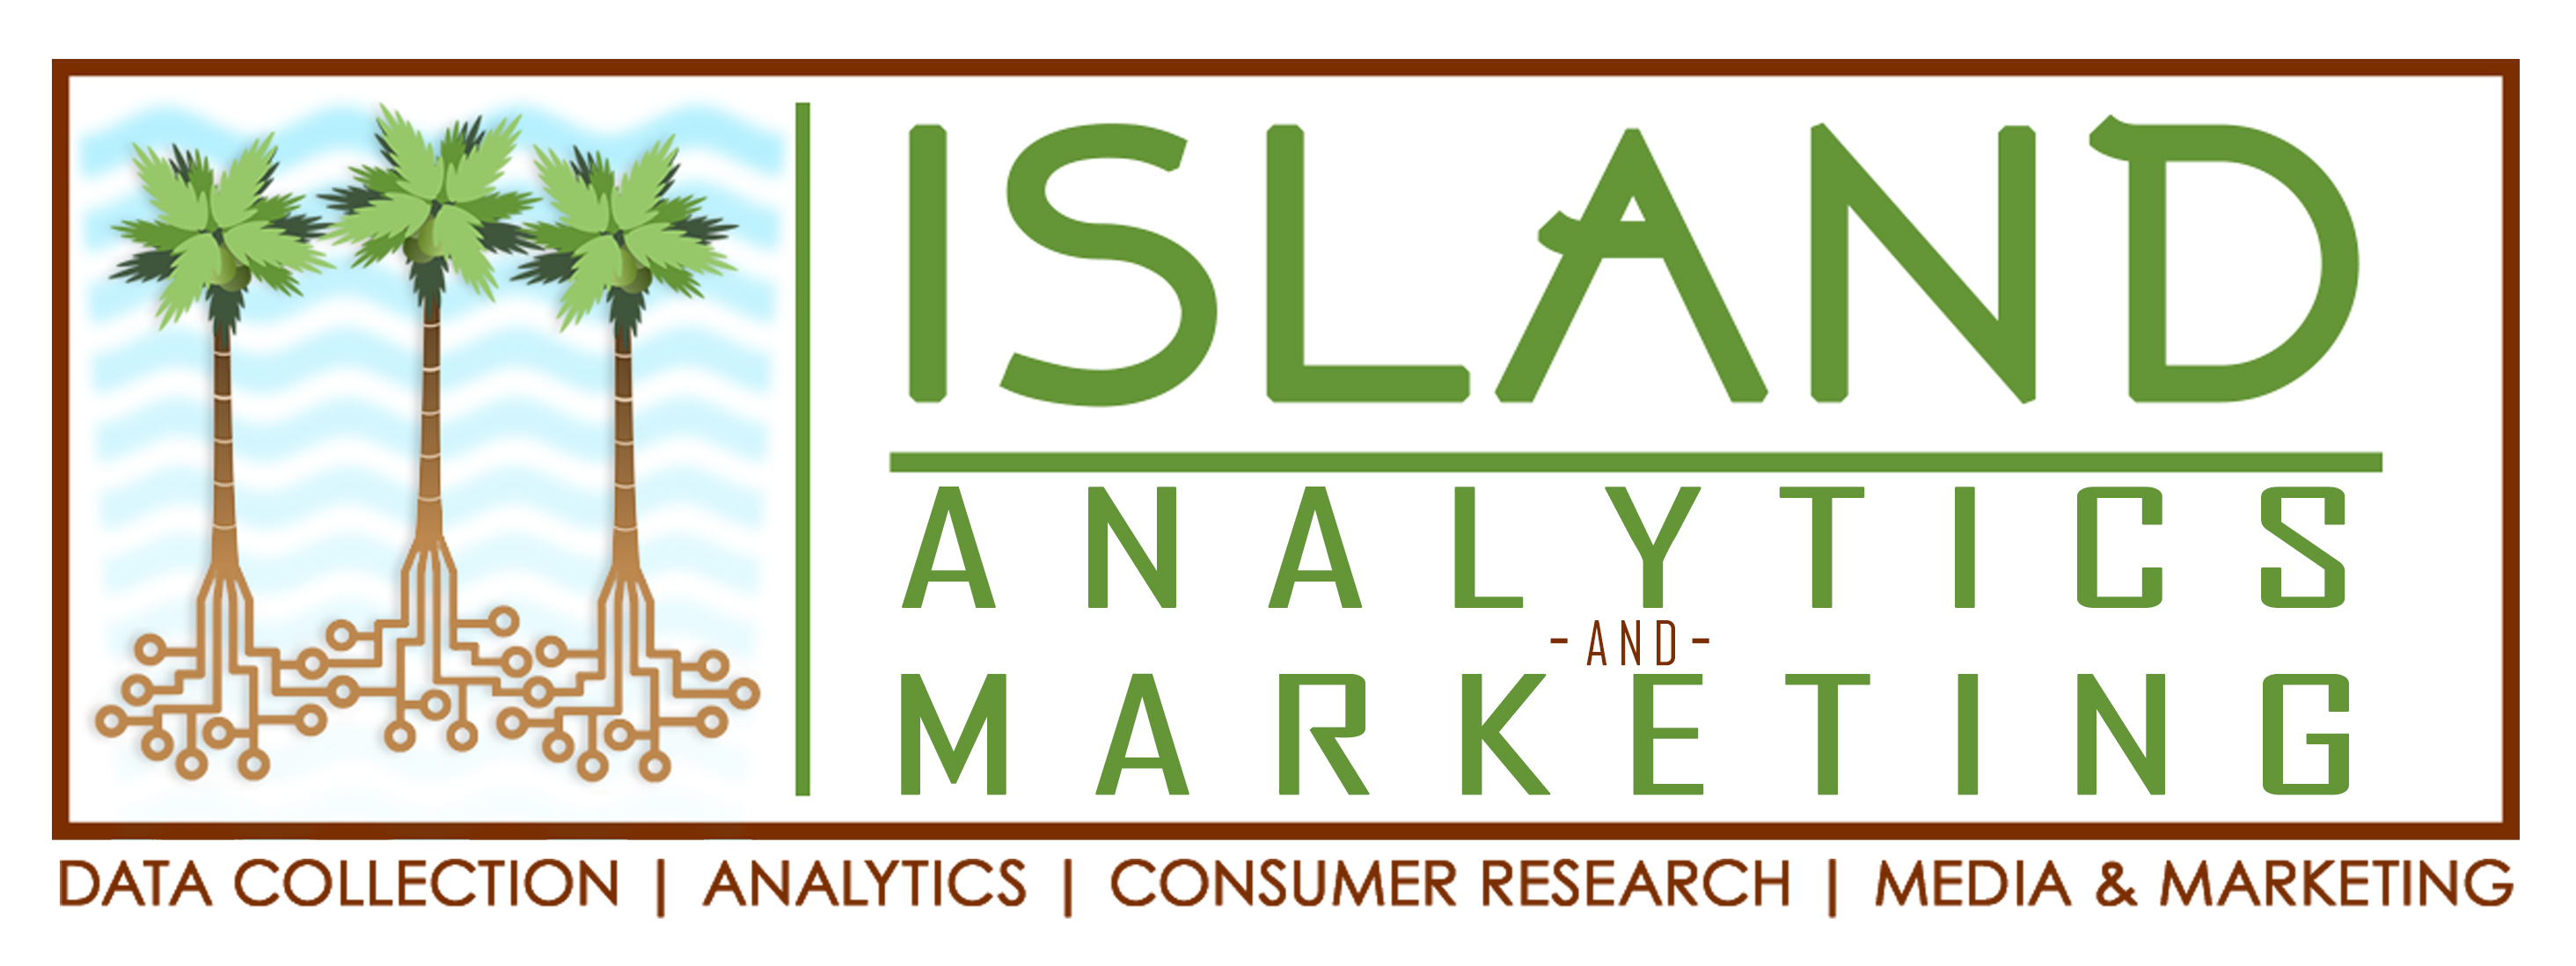 Island Analytics and Marketing